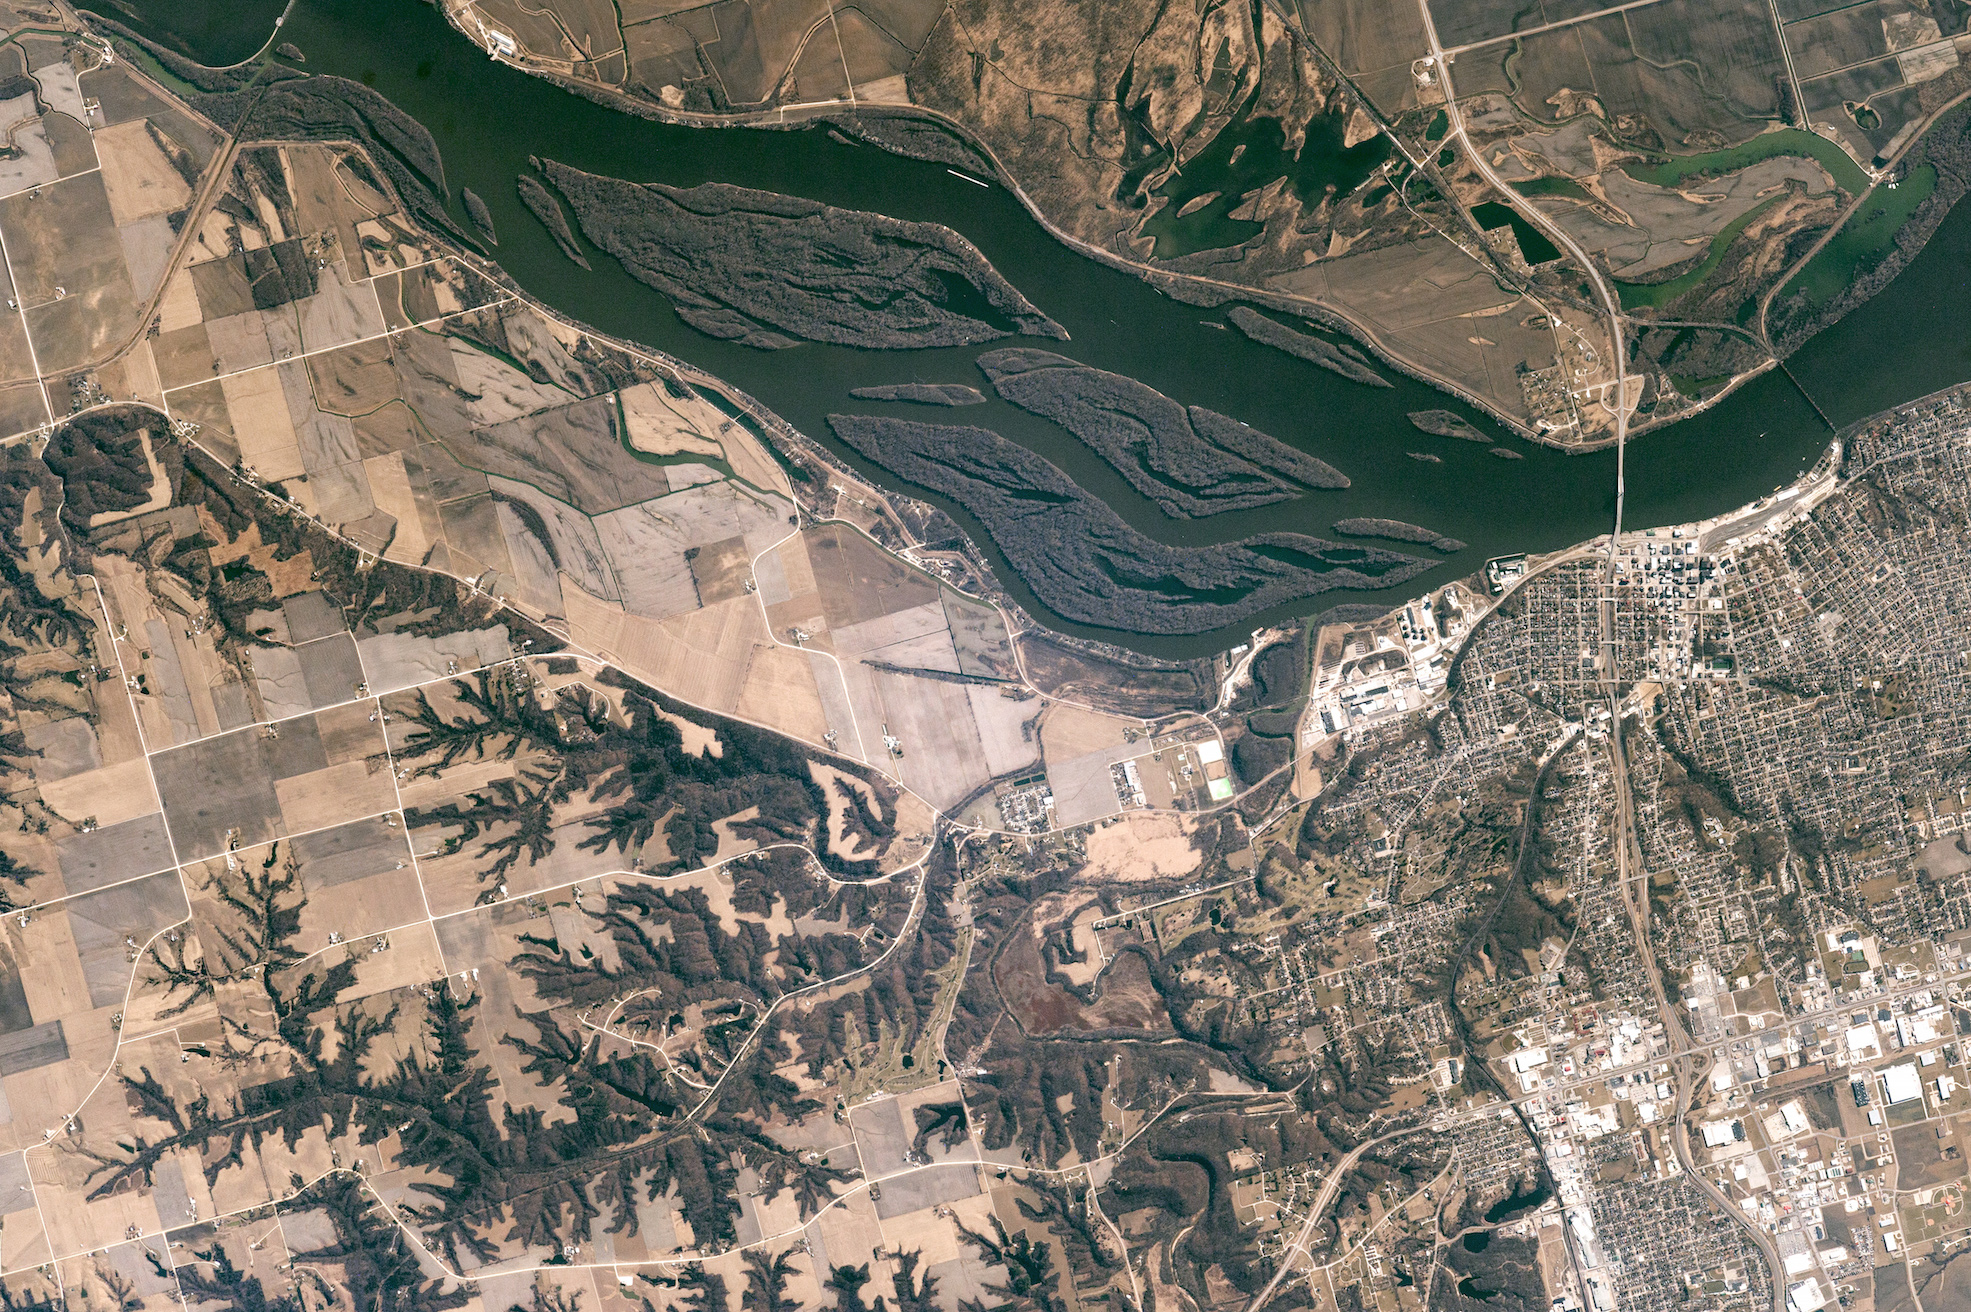 Today's Image of the Day comes thanks to the NASA Earth Observatory and features a look at Burlington, Iowa along the Mississippi River.